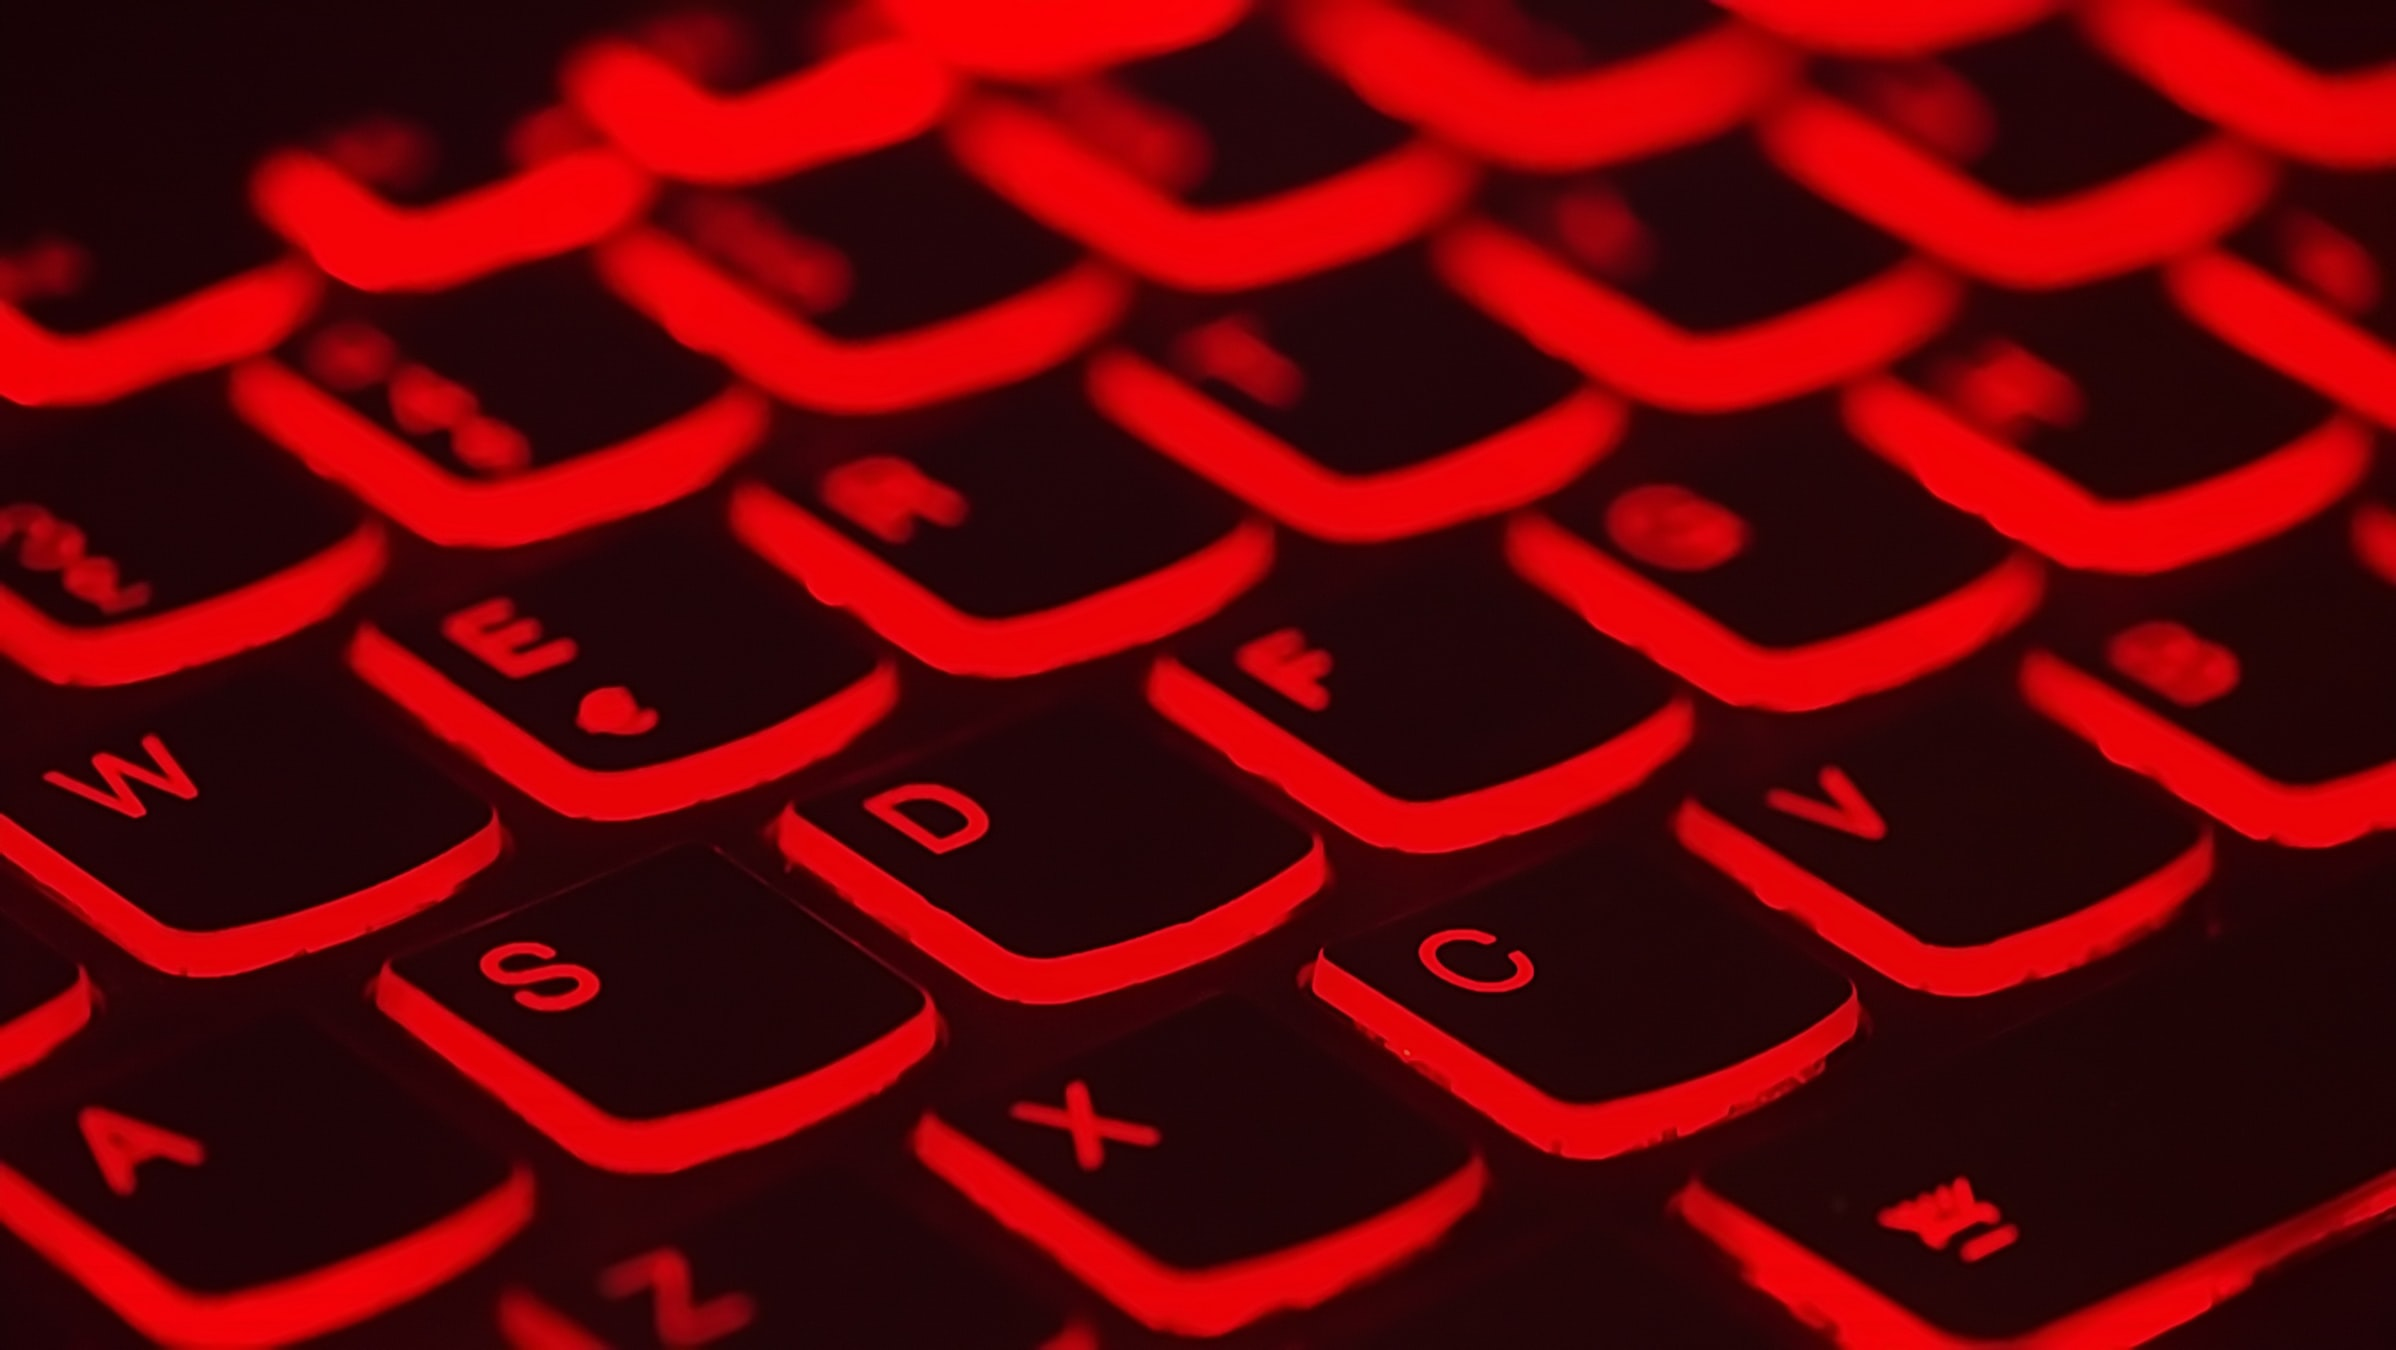 red lighted keyboard